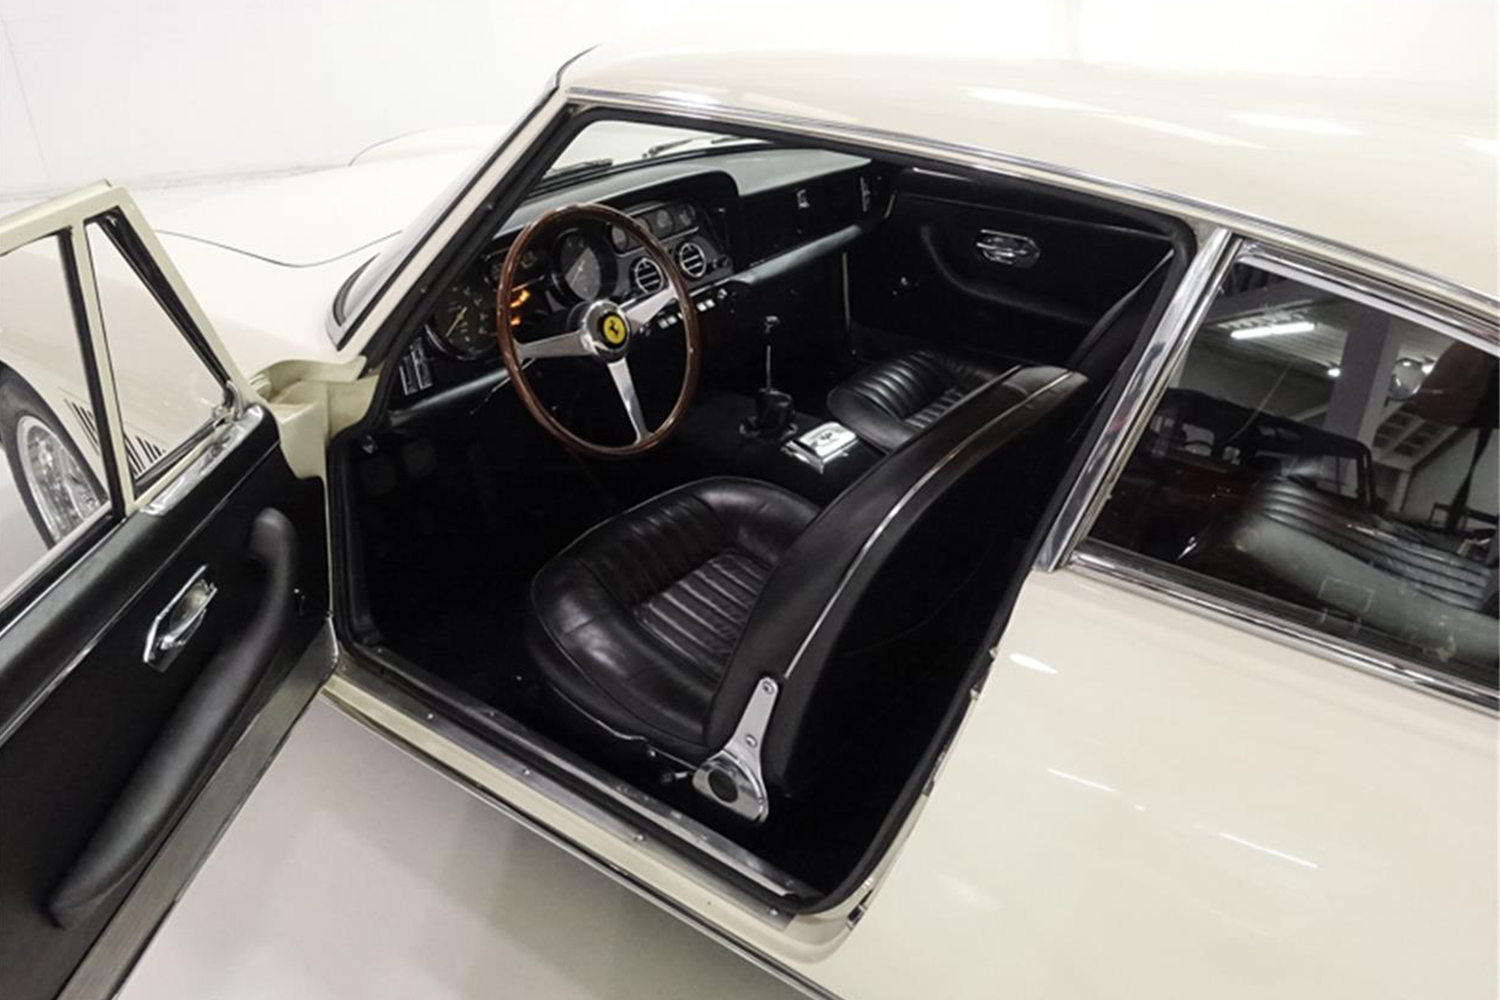 Enzo Interieur Enzo Ferrari S Personal Car Found In A Shipping Container Is For